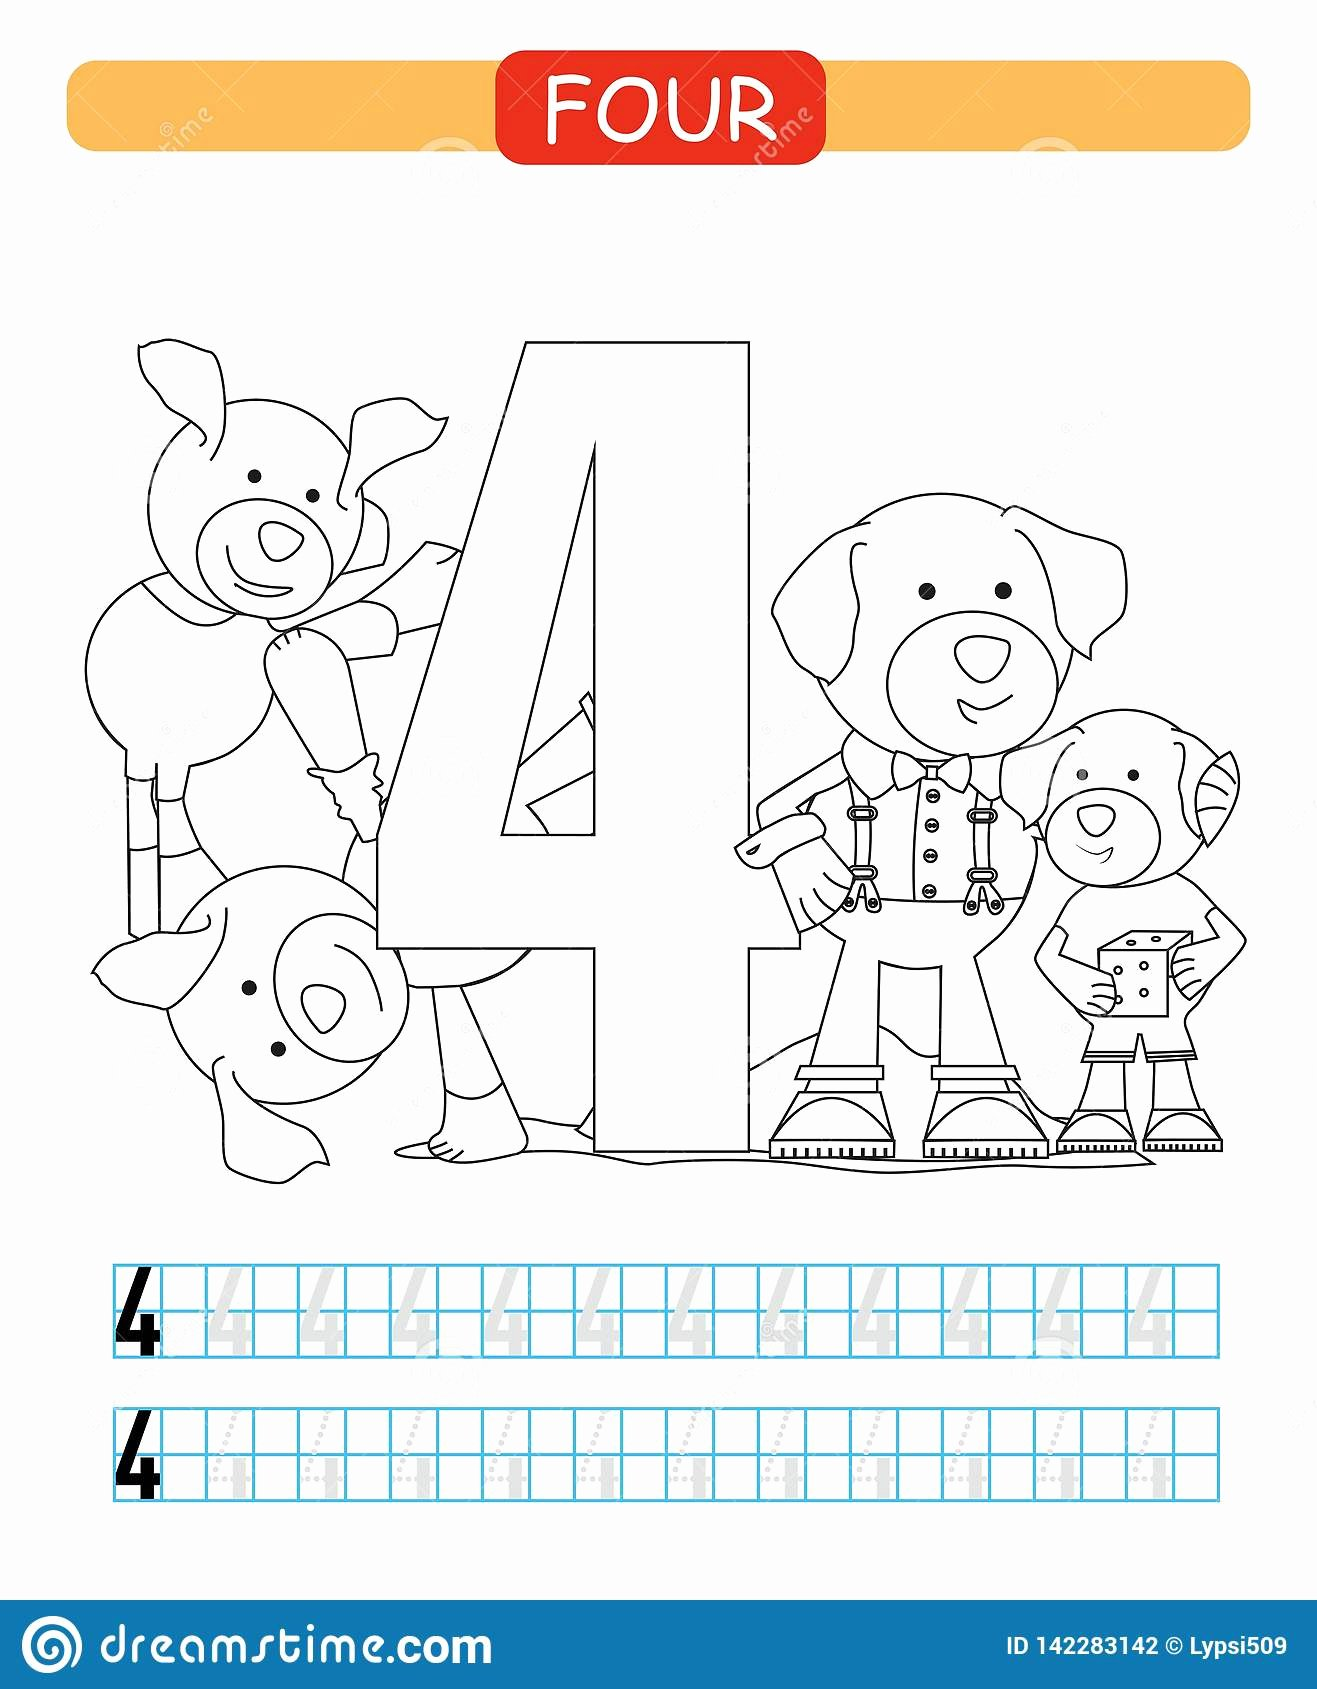 Dog Worksheets for Preschoolers Unique Four Learning Number 4 Coloring Printable Worksheet for